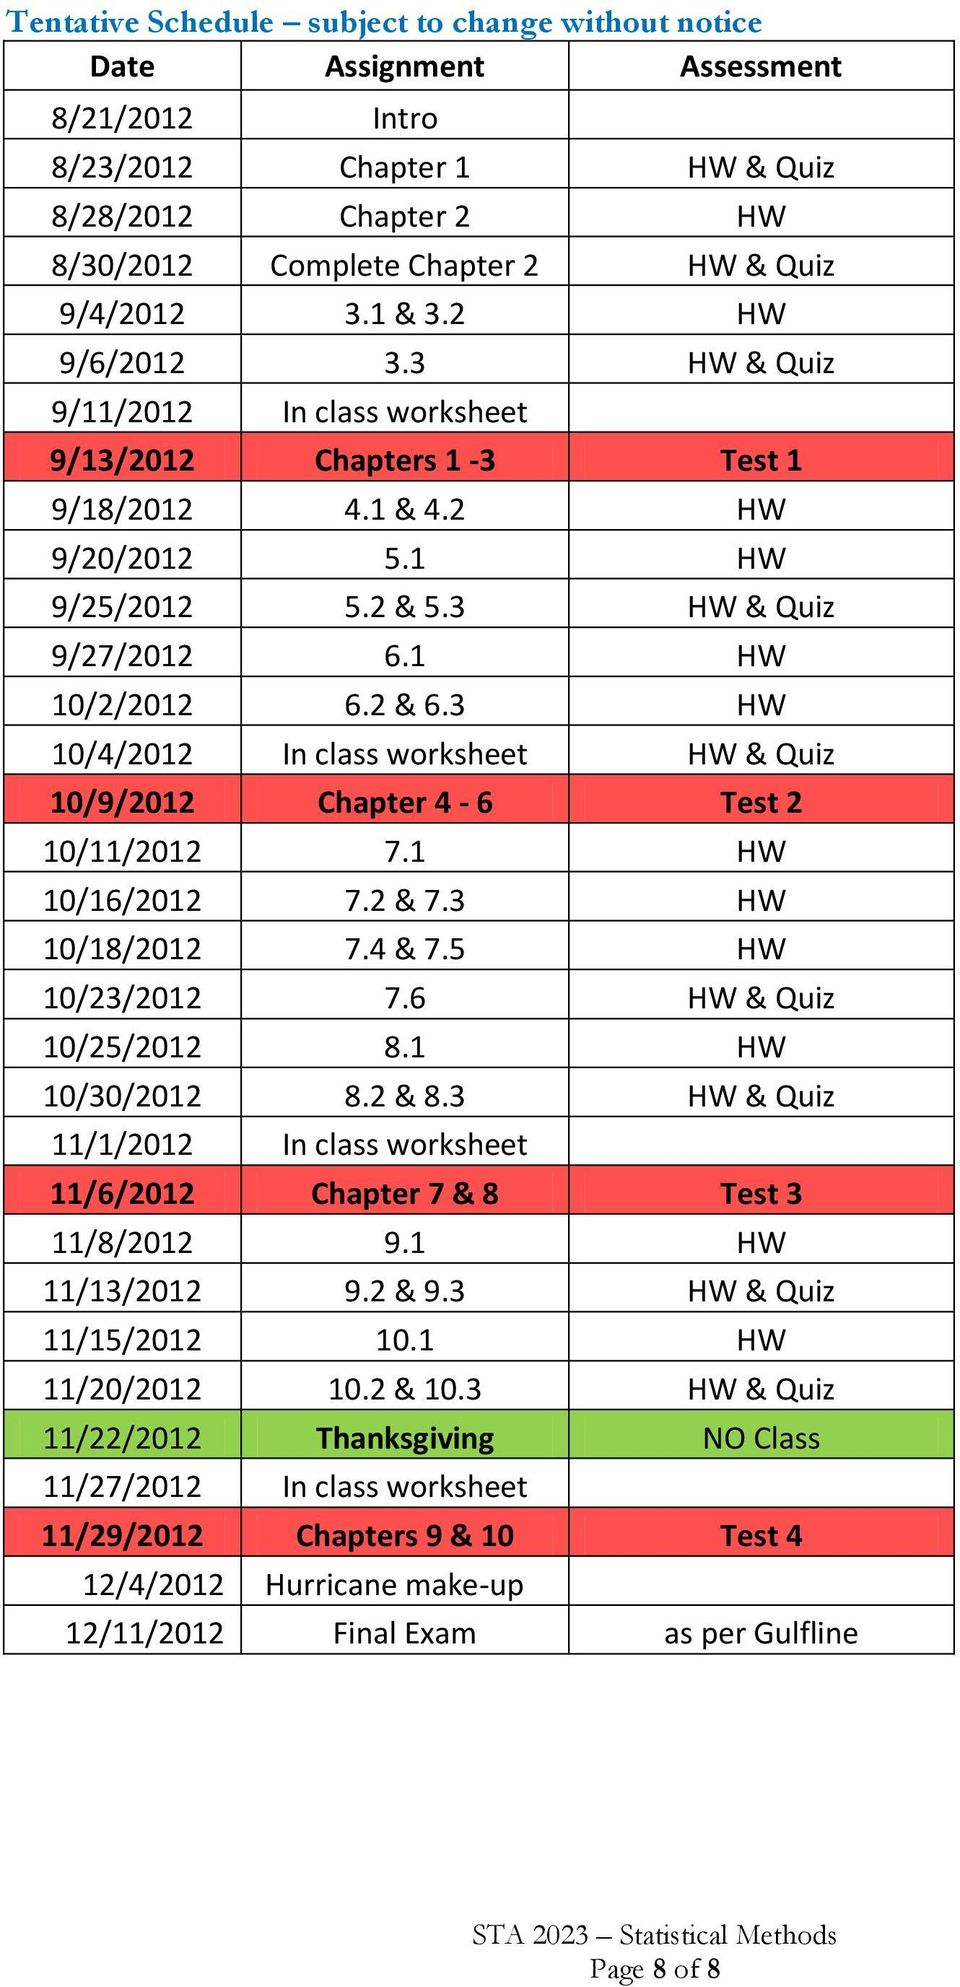 3 HW 10/4/2012 In class worksheet HW & Quiz 10/9/2012 Chapter 4-6 Test 2 10/11/2012 7.1 HW 10/16/2012 7.2 & 7.3 HW 10/18/2012 7.4 & 7.5 HW 10/23/2012 7.6 HW & Quiz 10/25/2012 8.1 HW 10/30/2012 8.